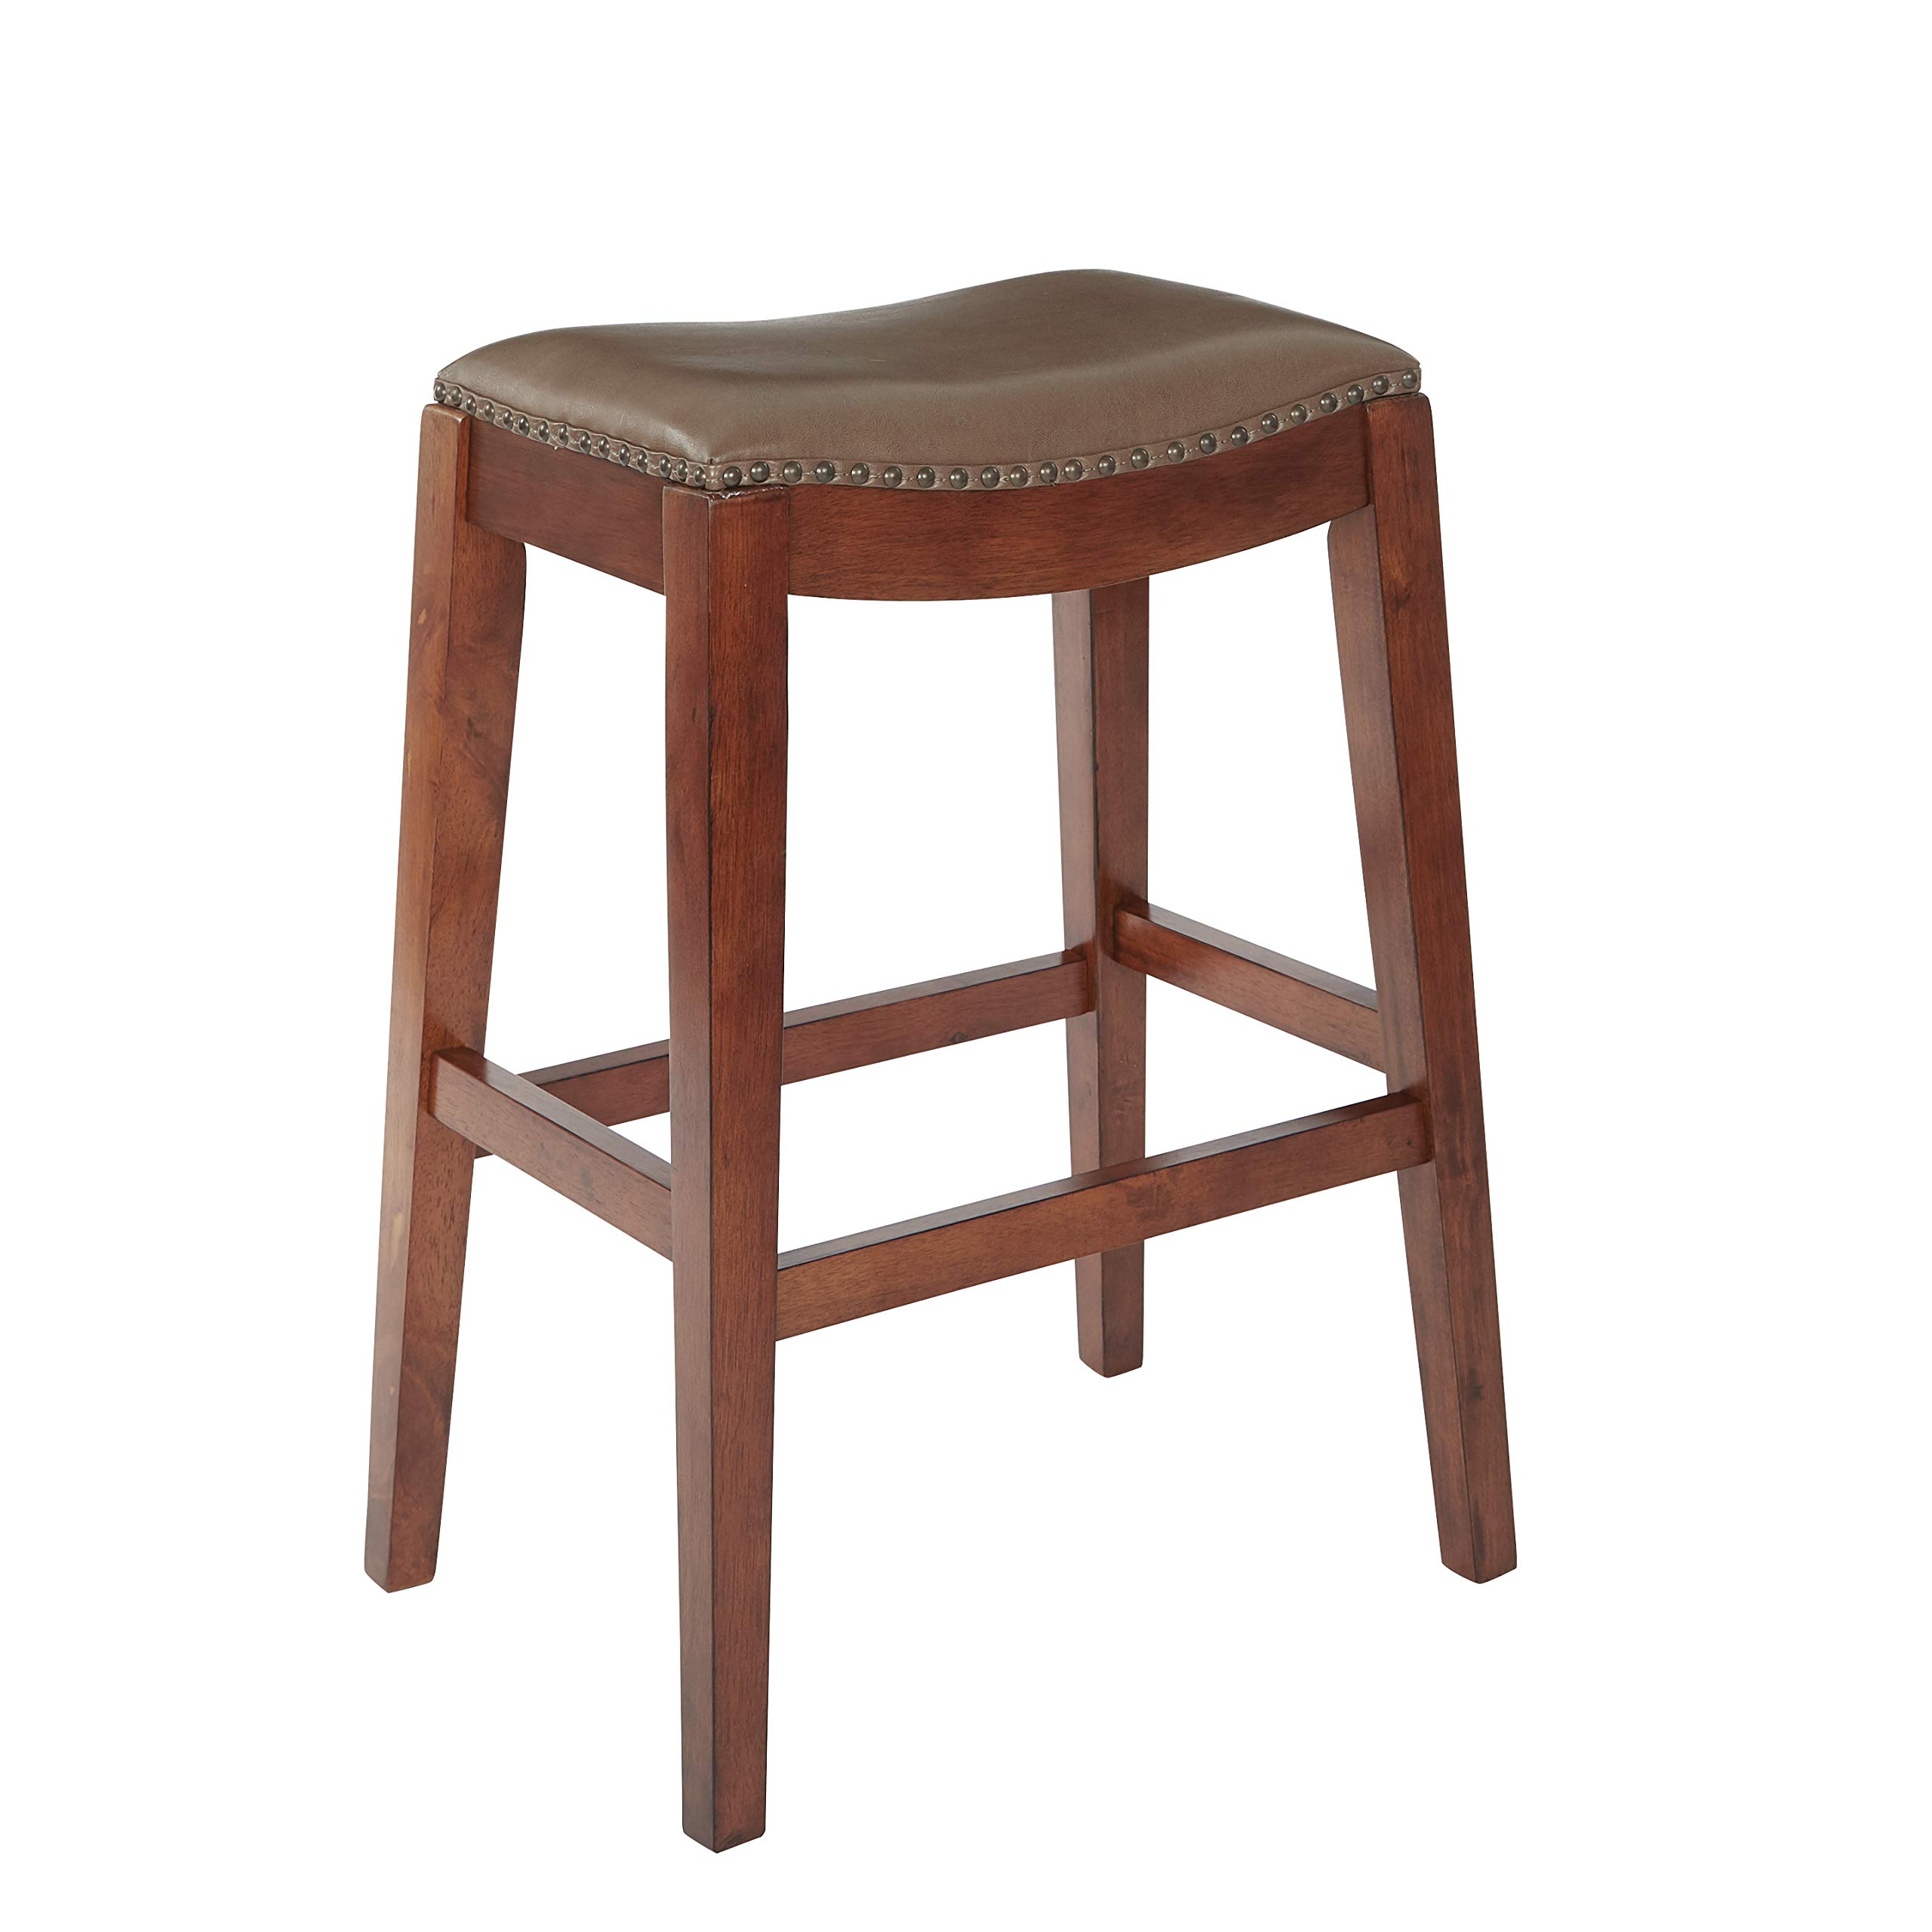 OSP Designs Metro Bonded Leather Bar-Height Saddle Stool with Nail Head Accents and Espresso Finished Legs, 29-Inch, Molasses